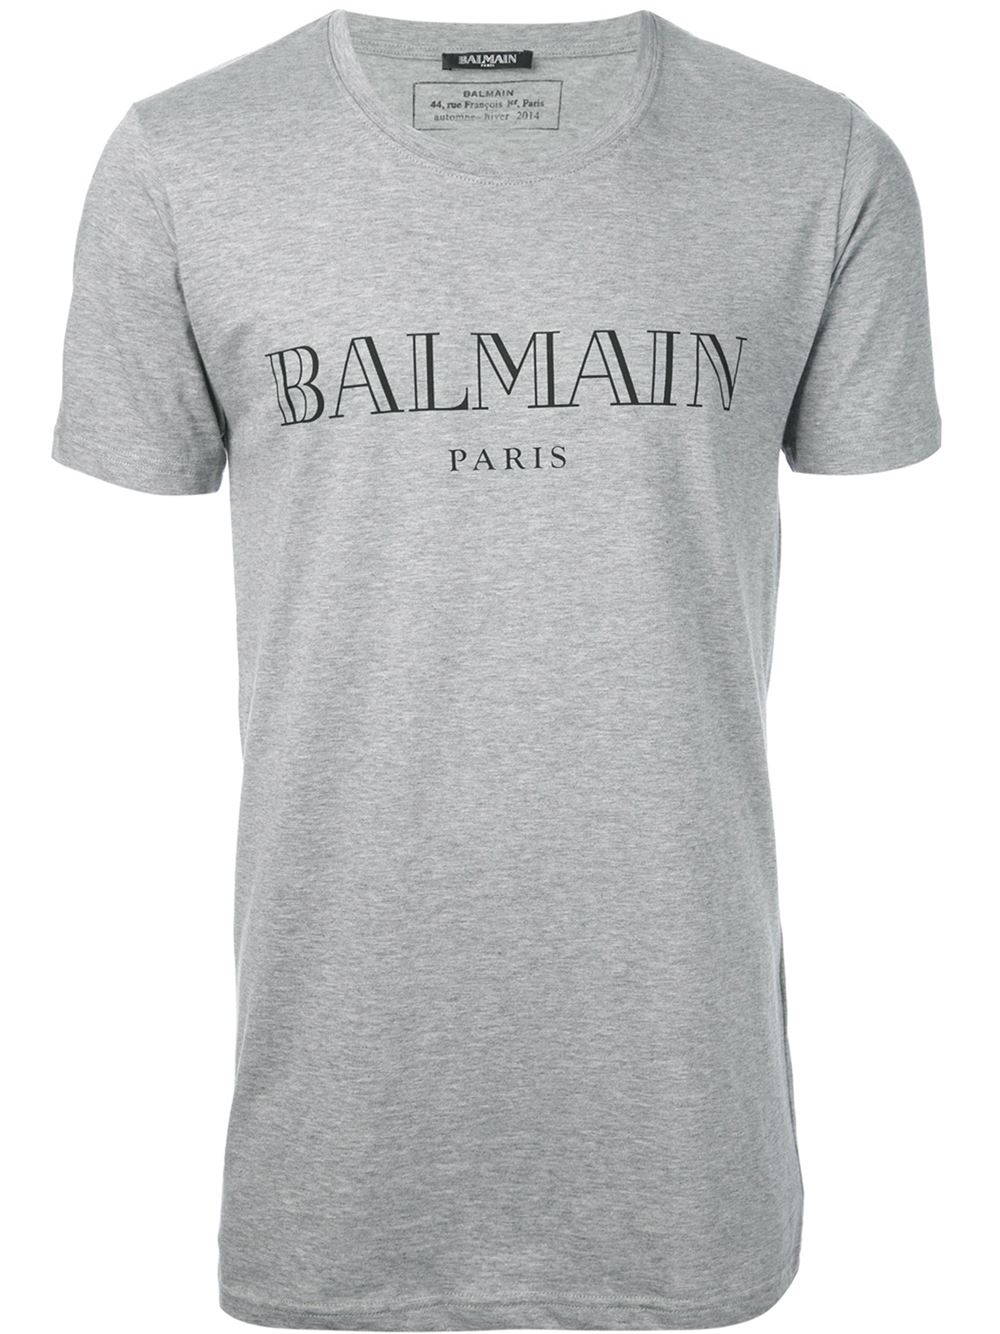 Balmain designer T-Shirts for menNew Arrivals· All Sizes· Secure Payments· Travel Bags.